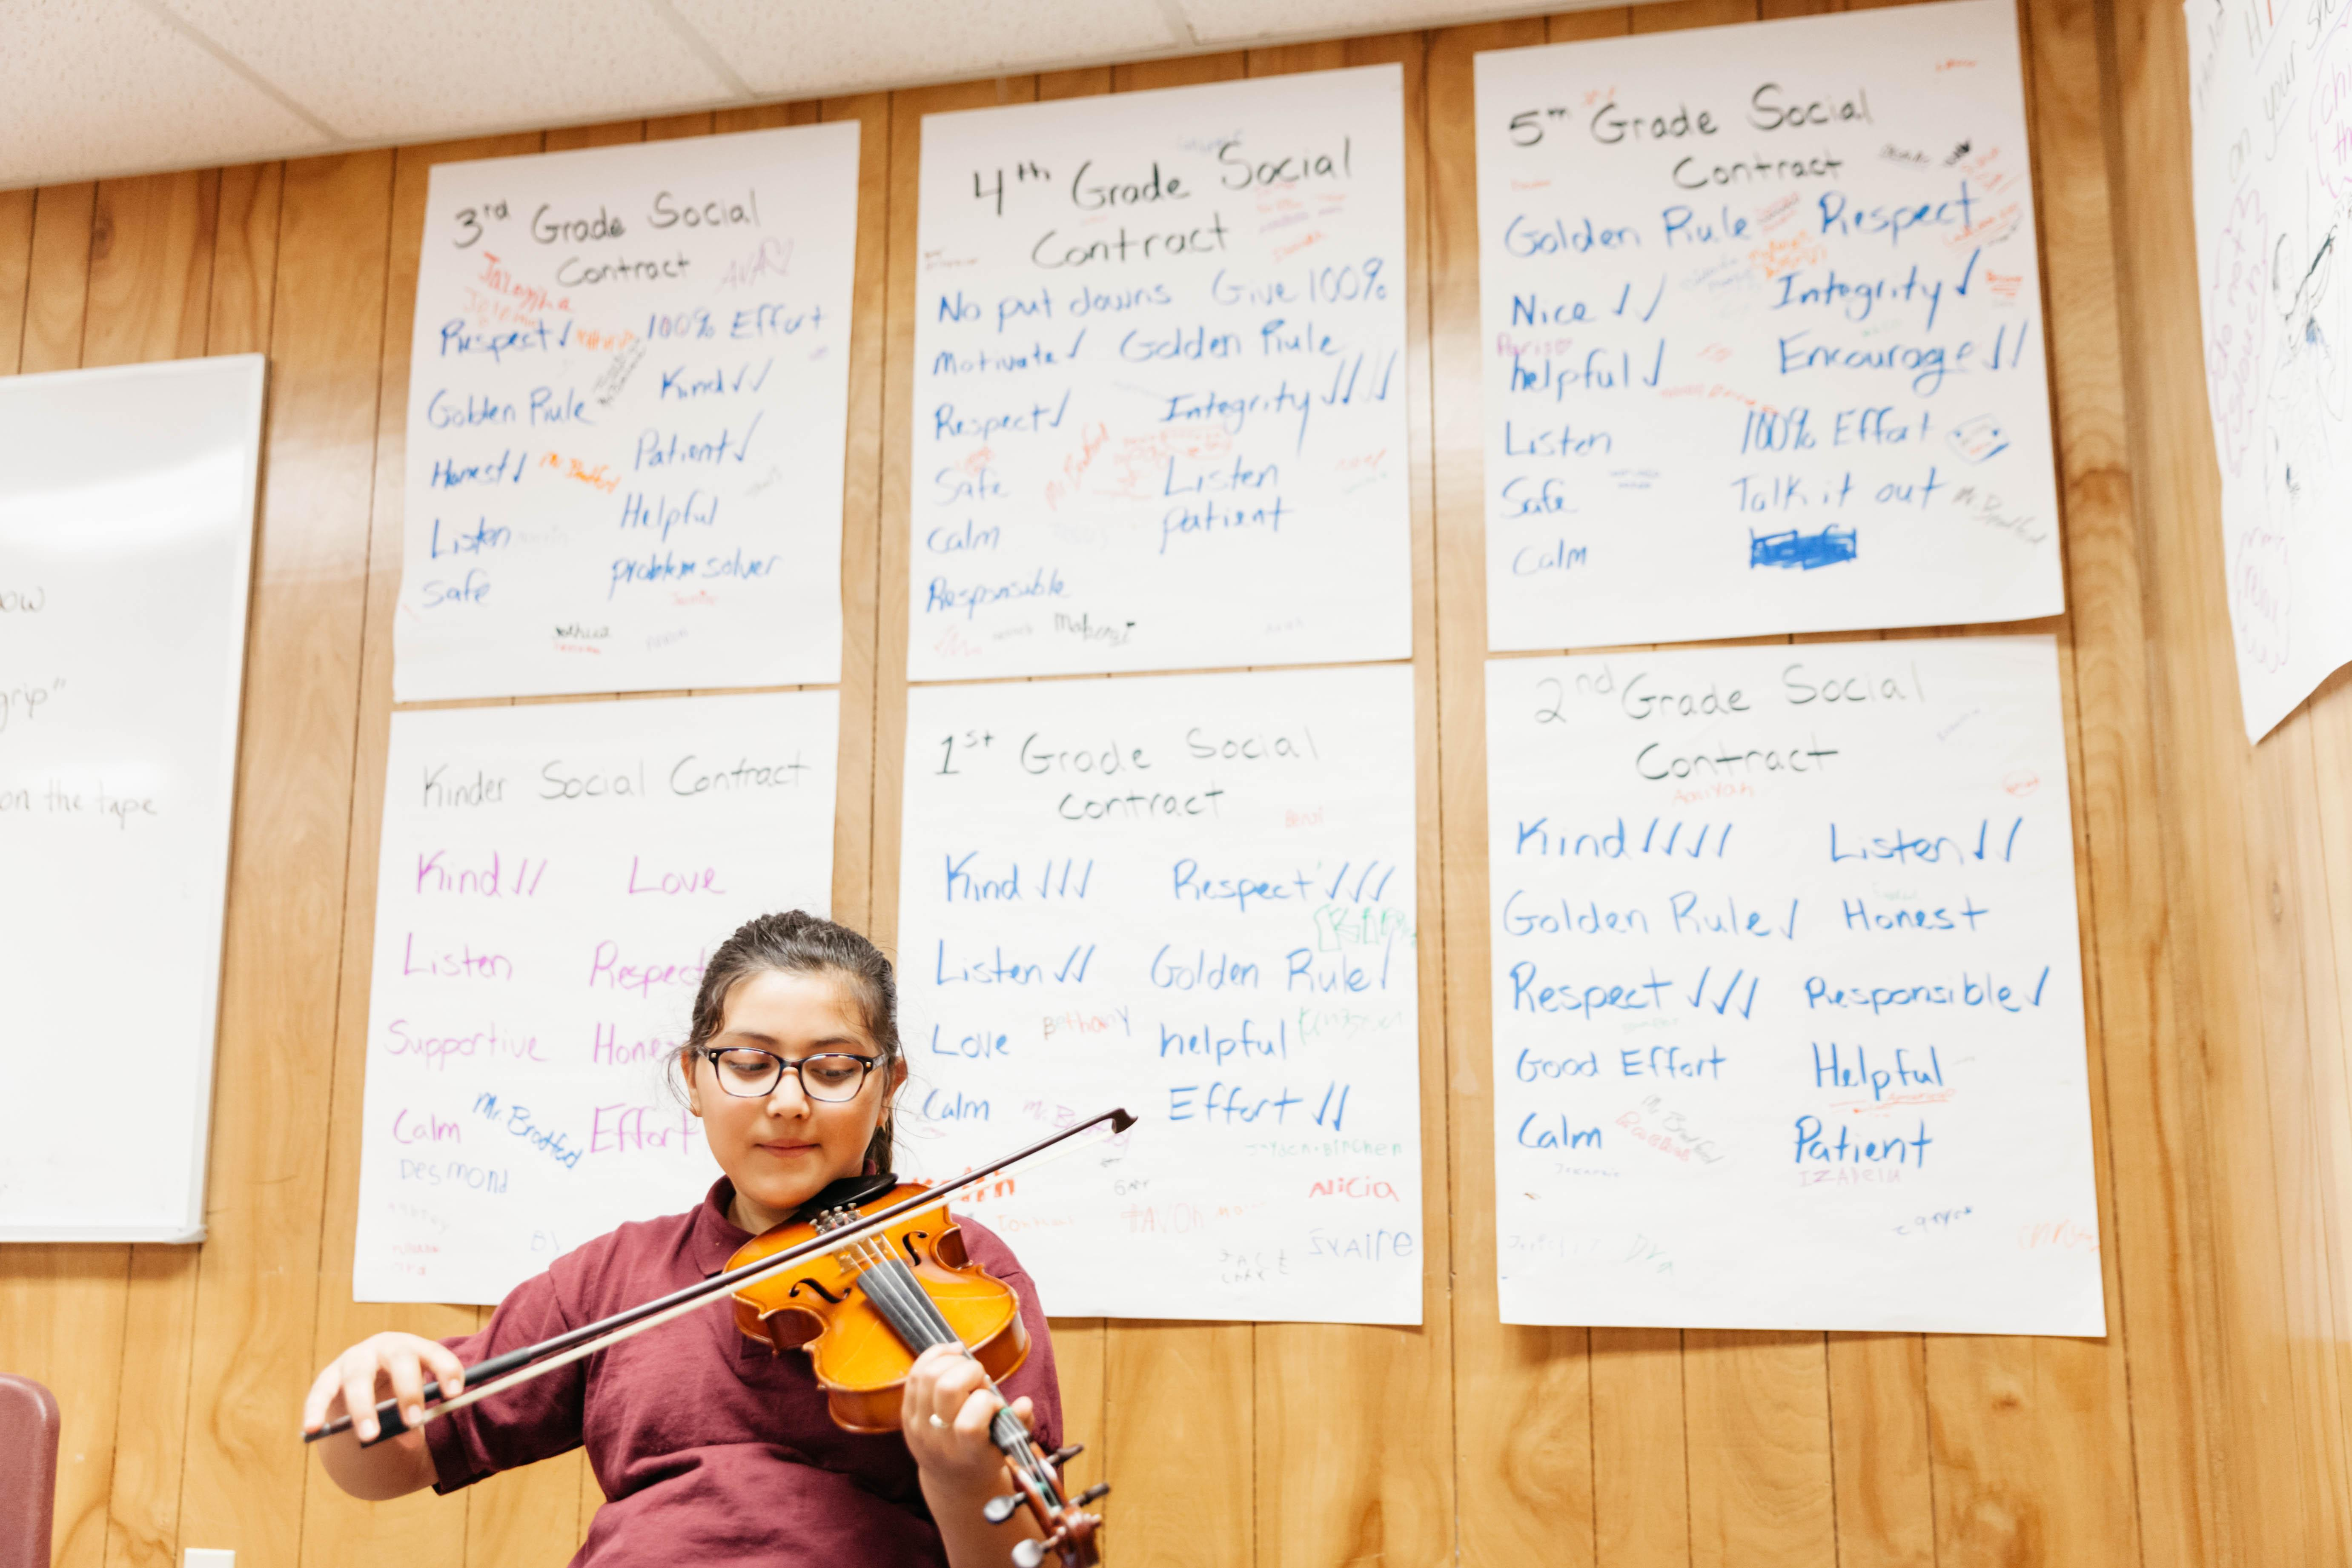 Student playing violin in front of the social contracts.